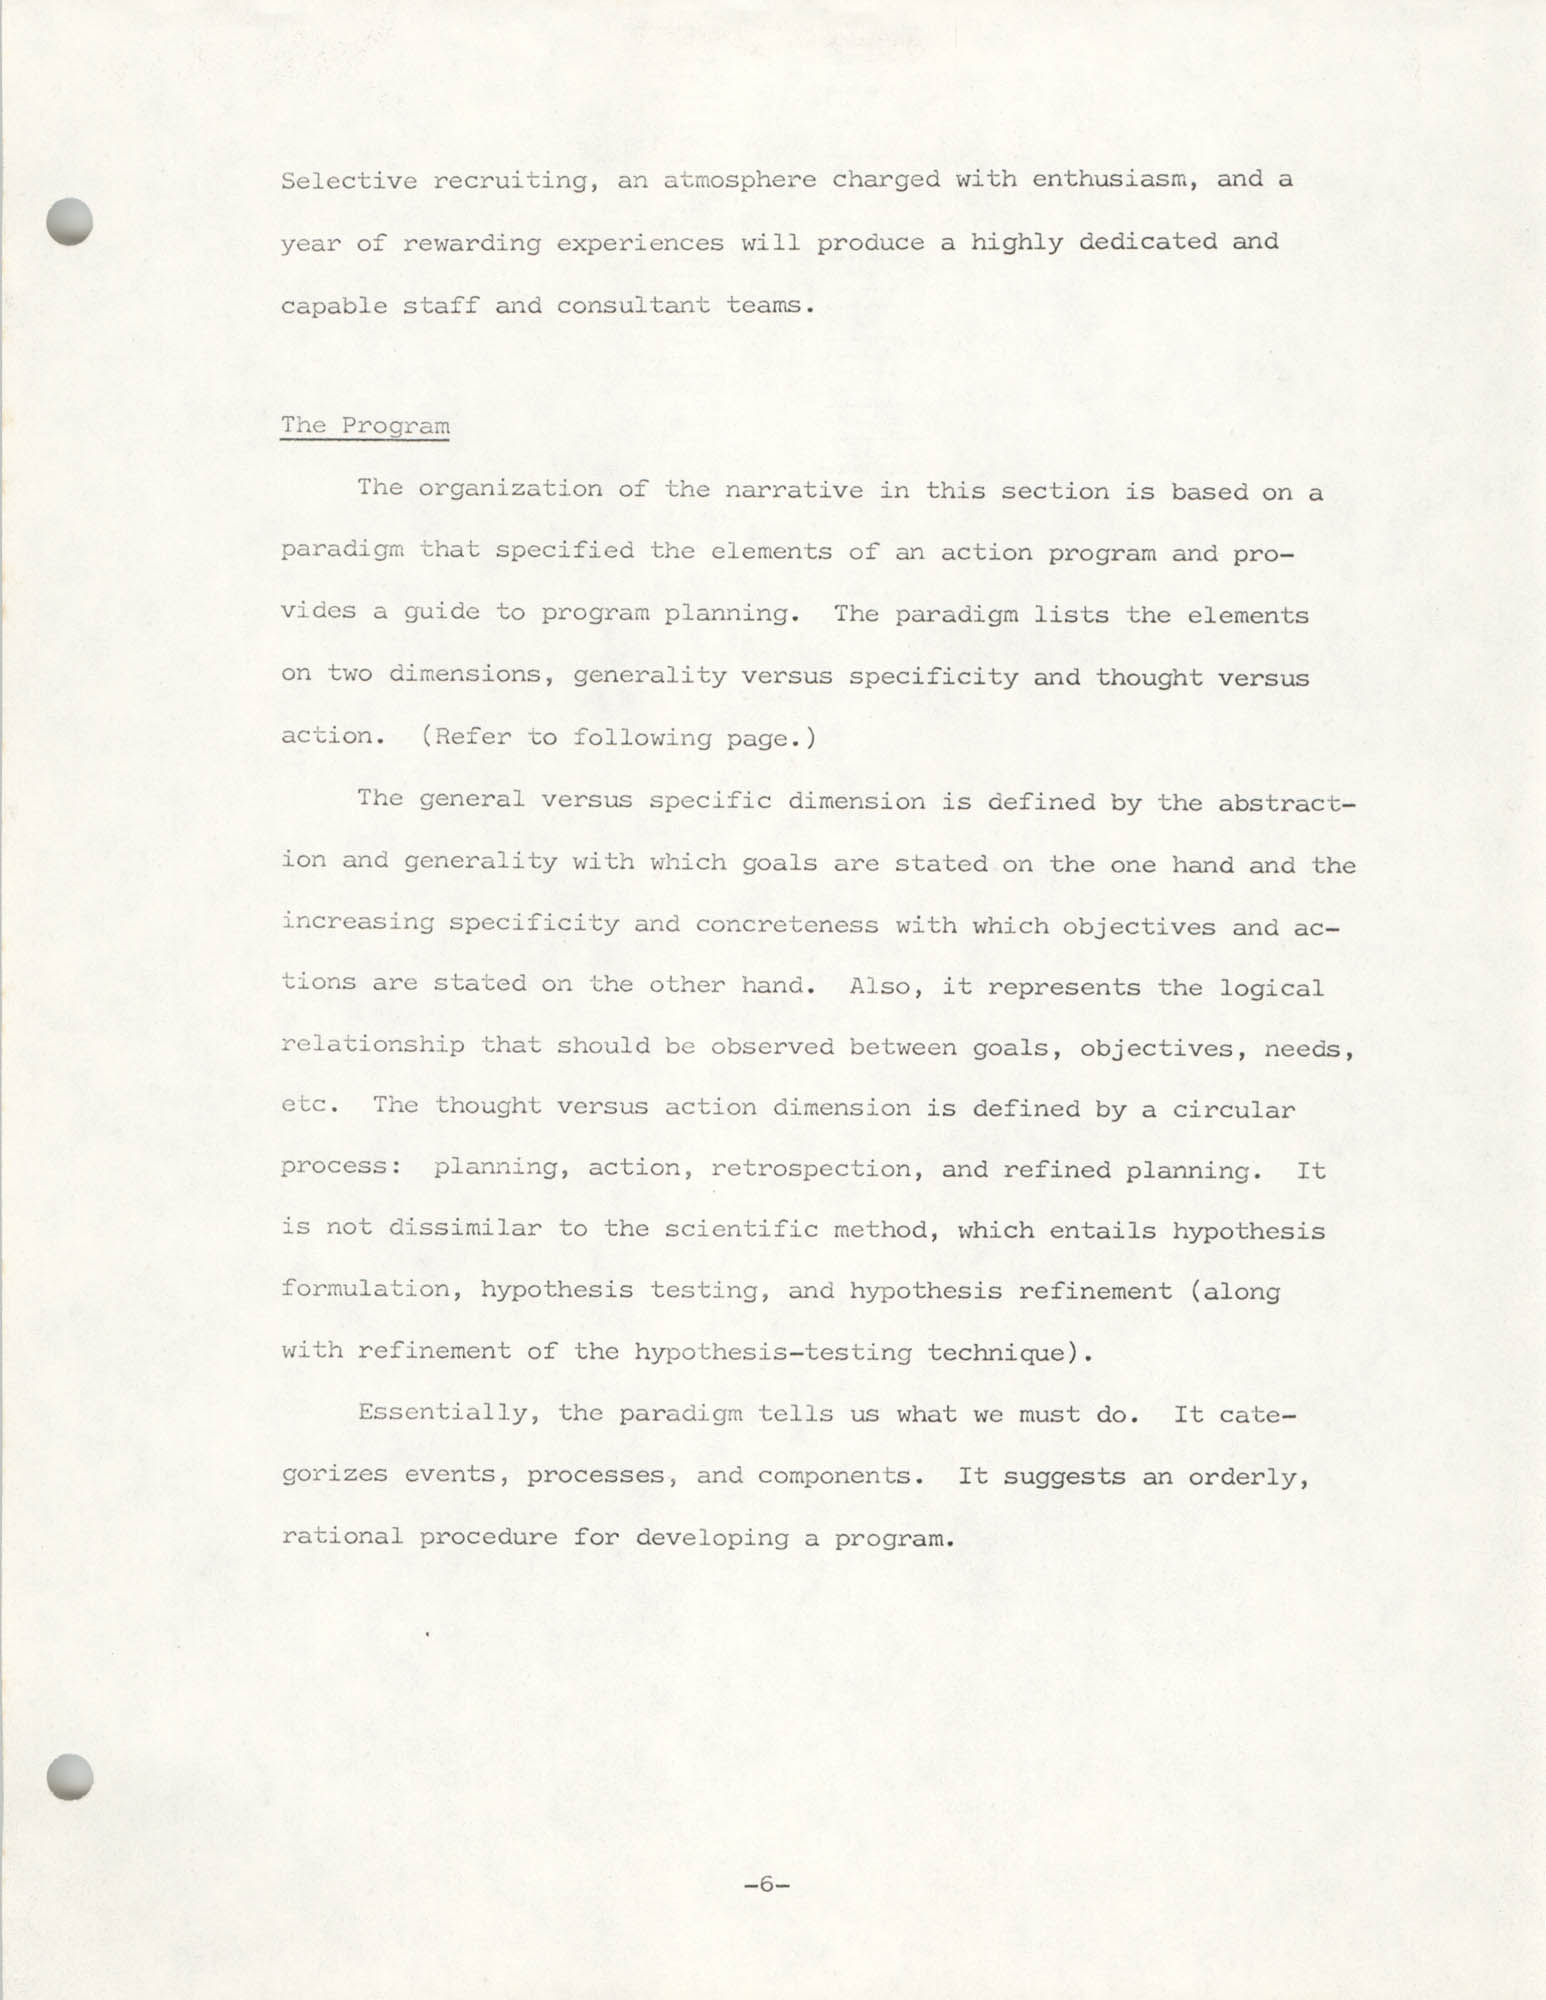 COBRA Philosophy of Technical Assistance, Page 6